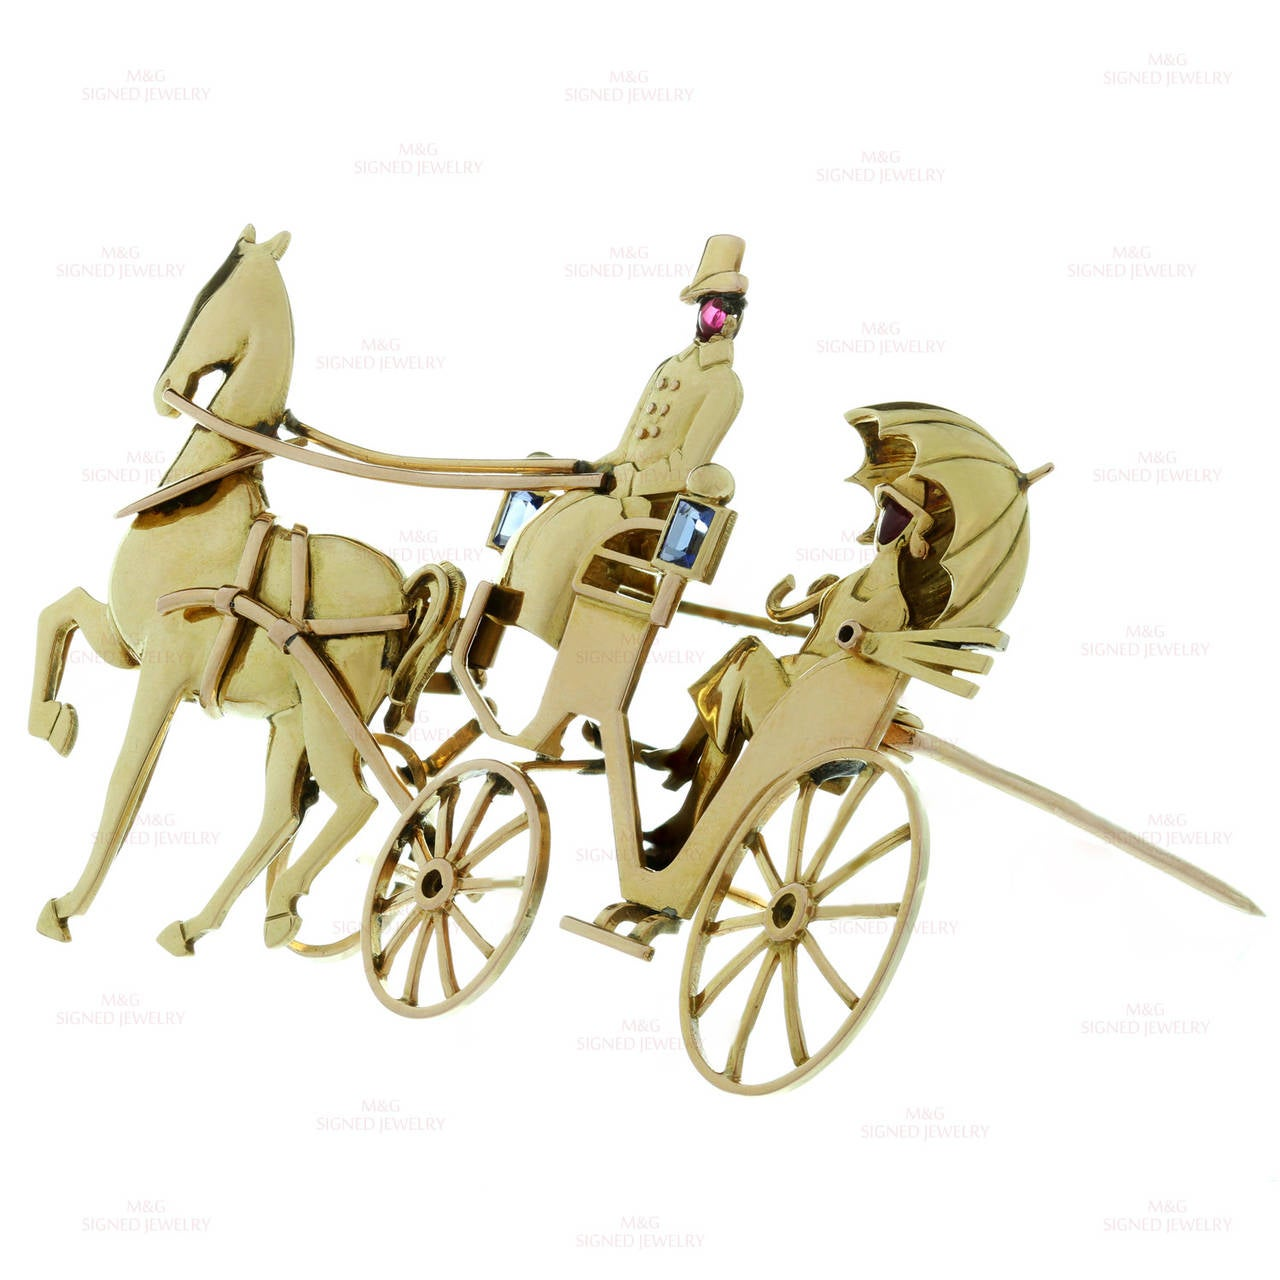 1940s Mauboussin Paris Sapphire Ruby Gold Horse Carriage Couple Brooch For Sale 1